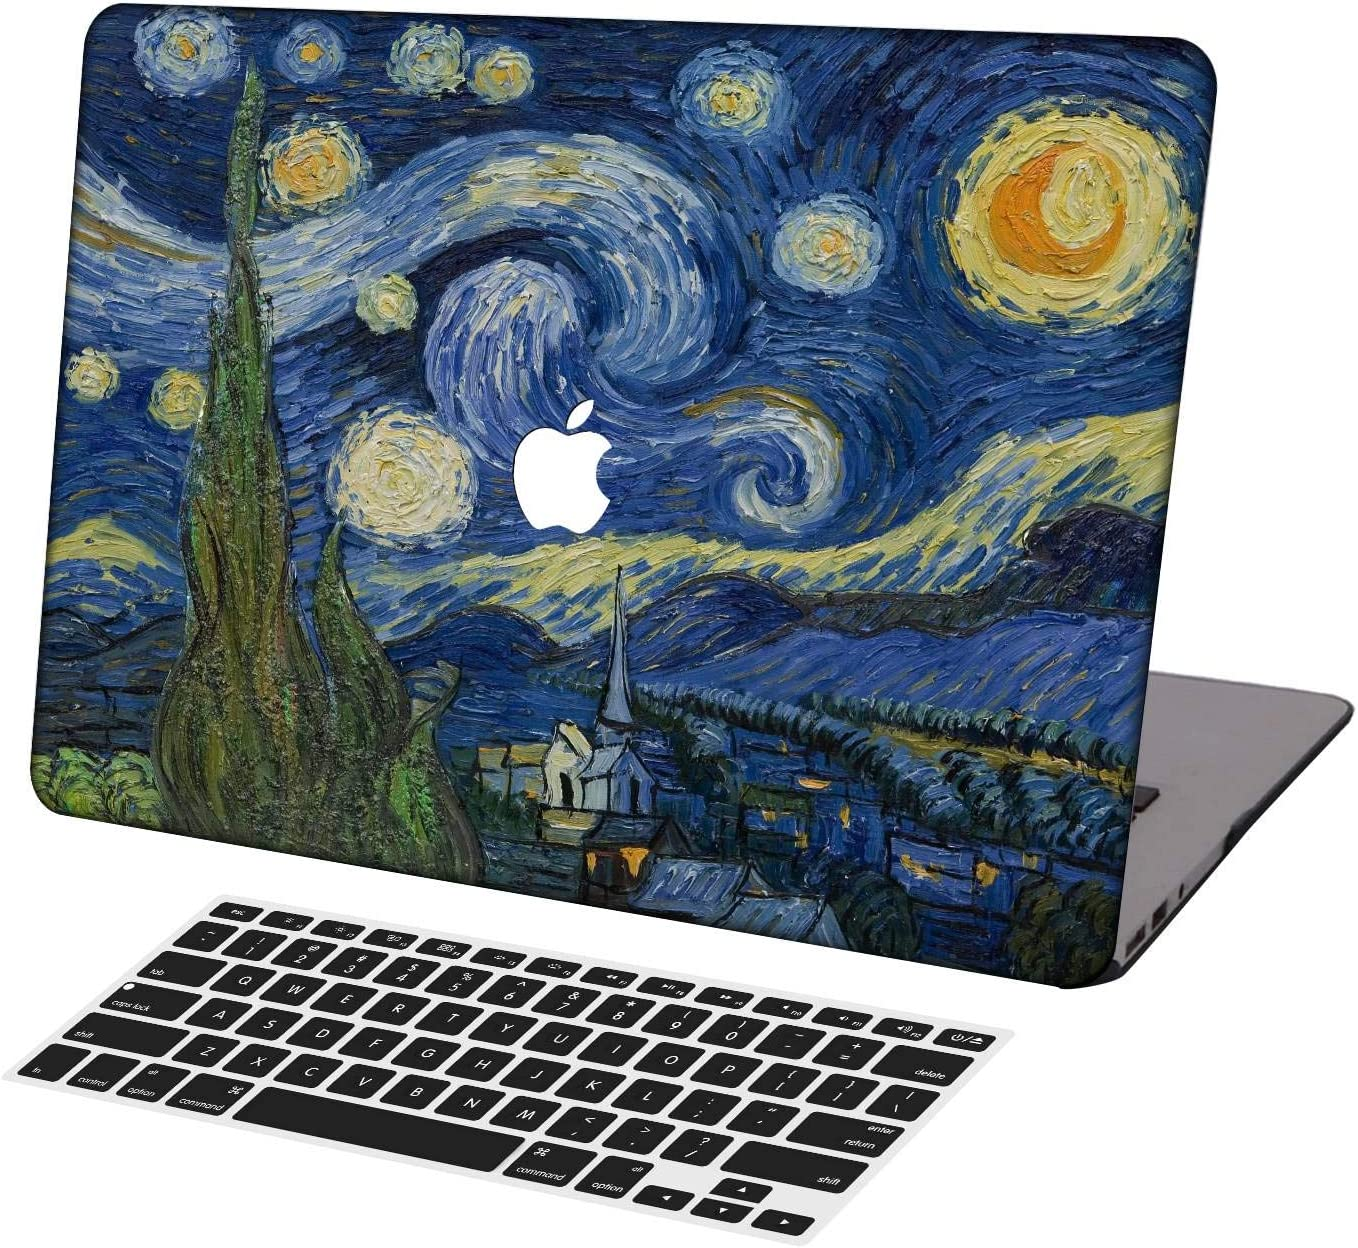 KSK KAISHEK Laptop Case for 2019 Release MacBook Pro 16 inch with Touch Bar Model:A2141,Plastic Ultra Slim Light Hard Shell Keyboard Cover,Van Gogh Starry Night